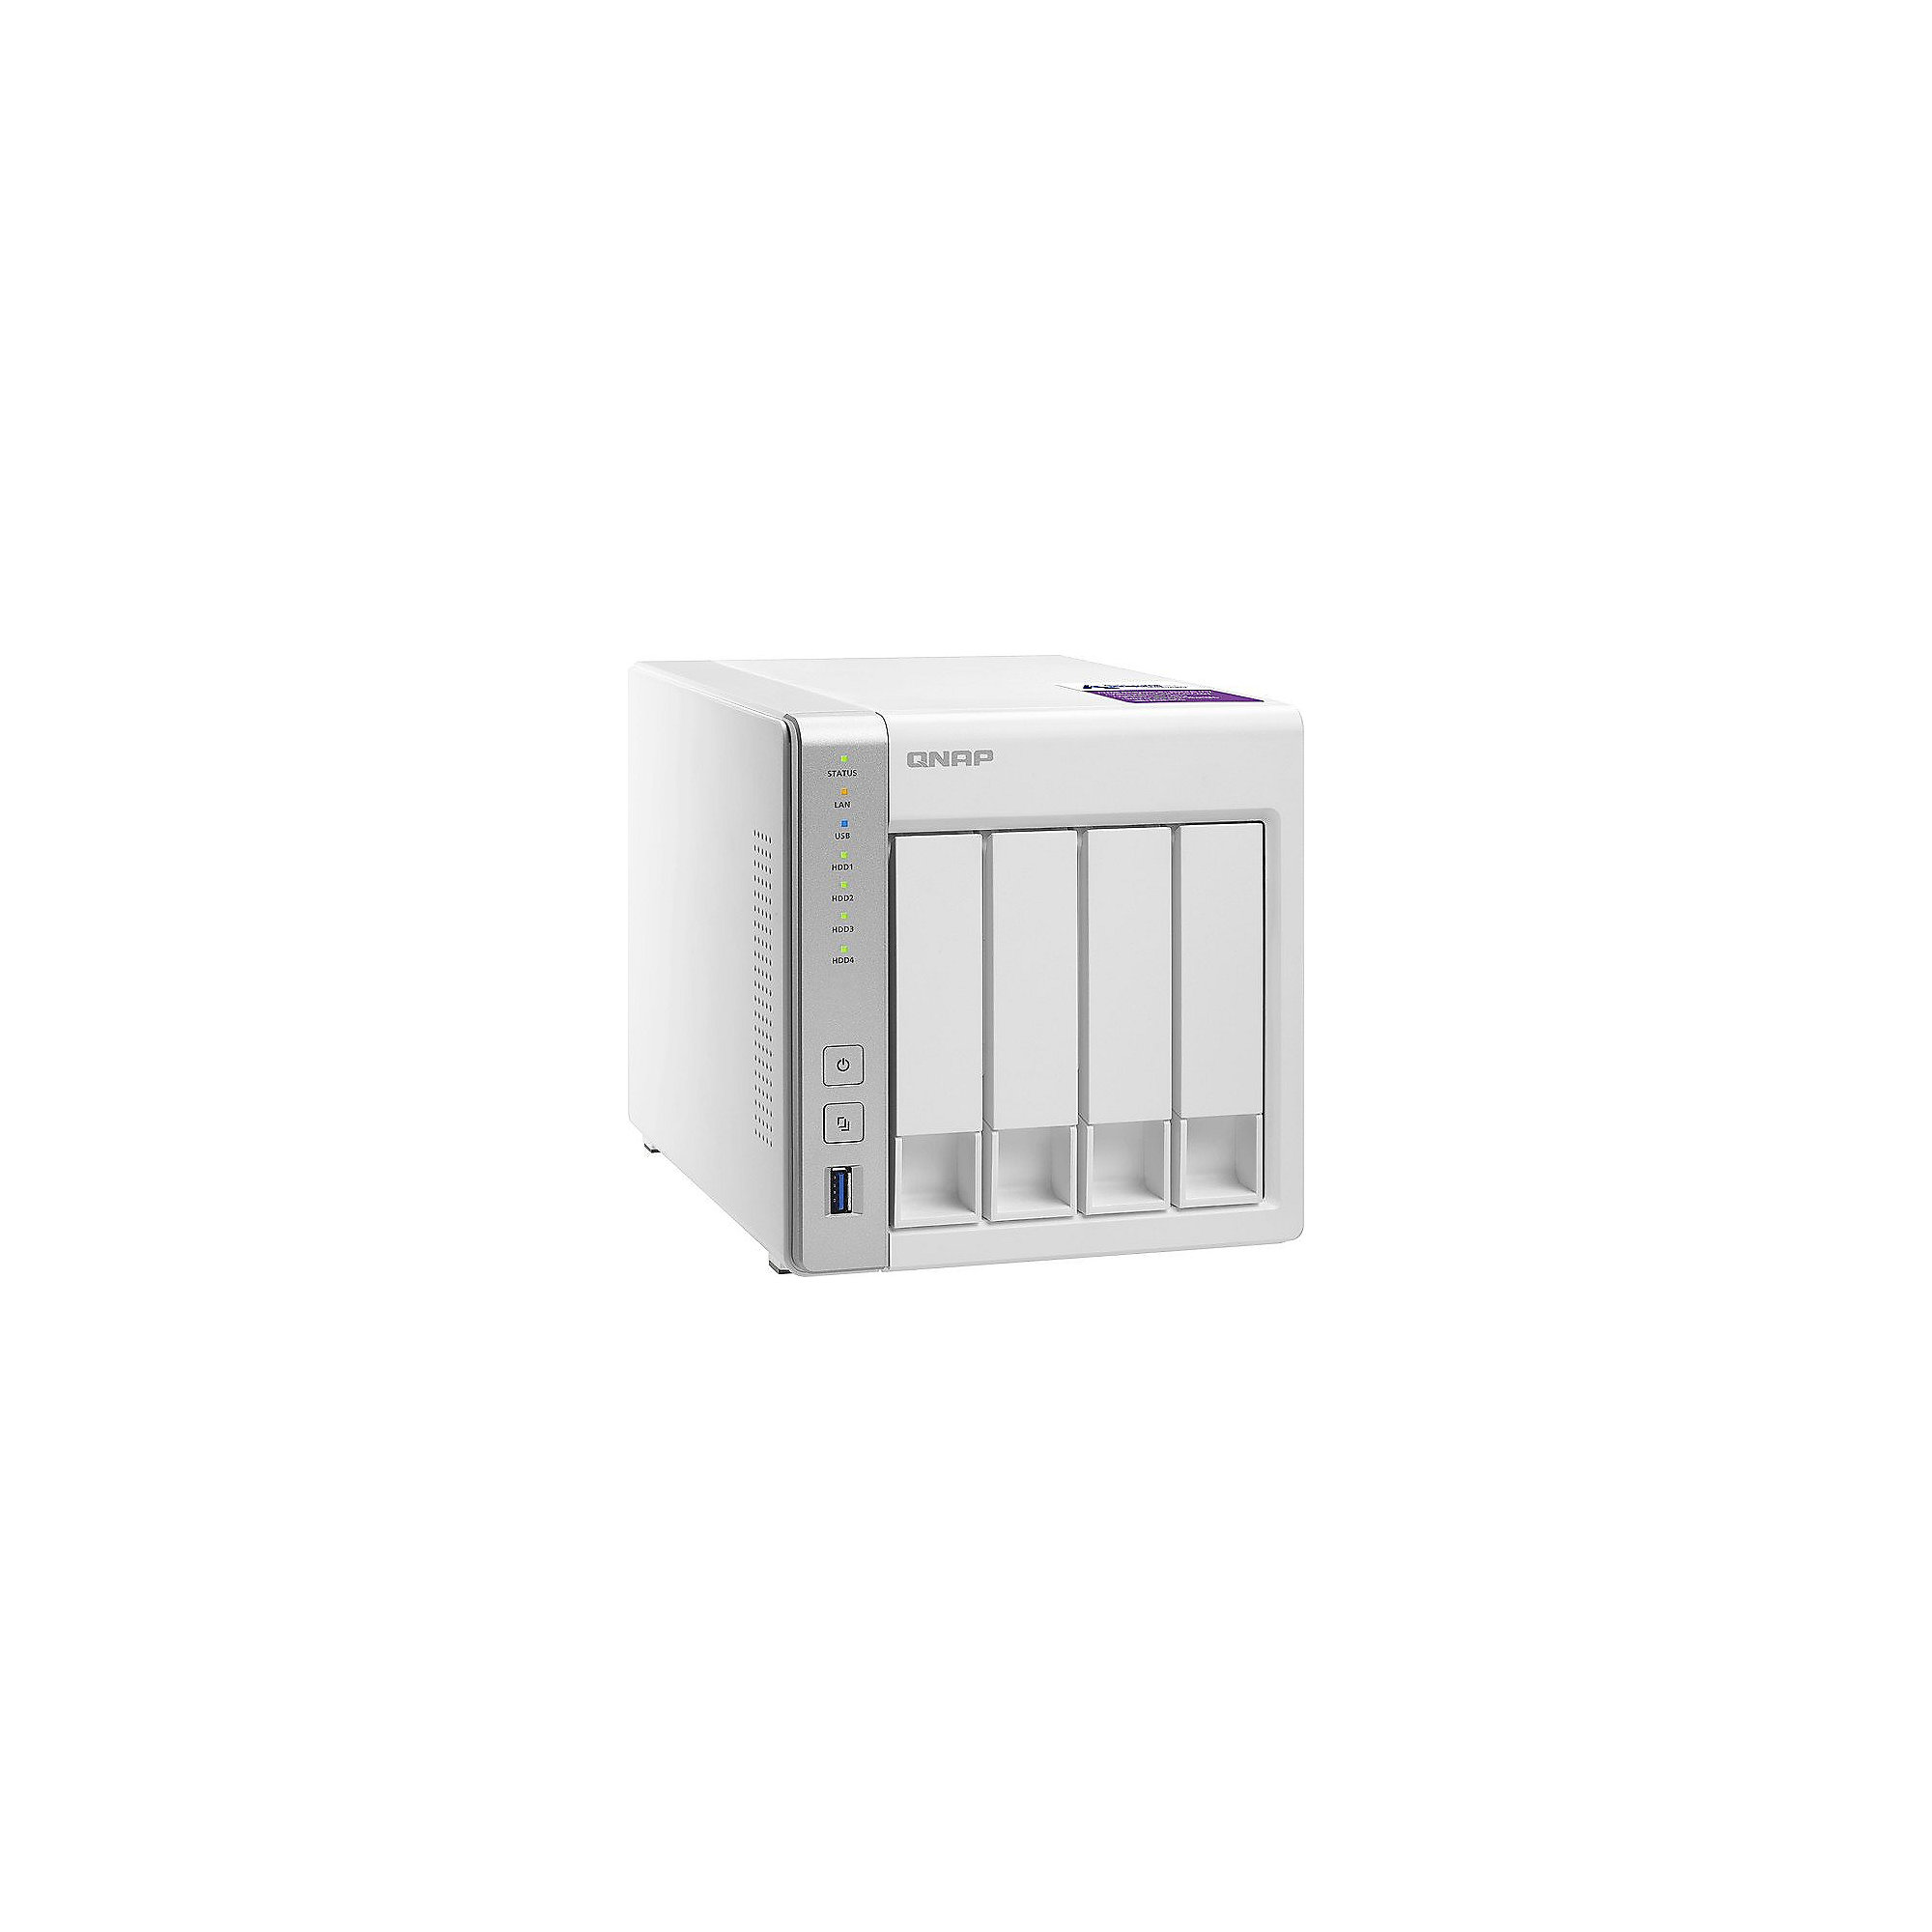 QNAP TS-431P NAS System 4-Bay 8TB inkl. 4x 2TB Seagate ST2000VN004